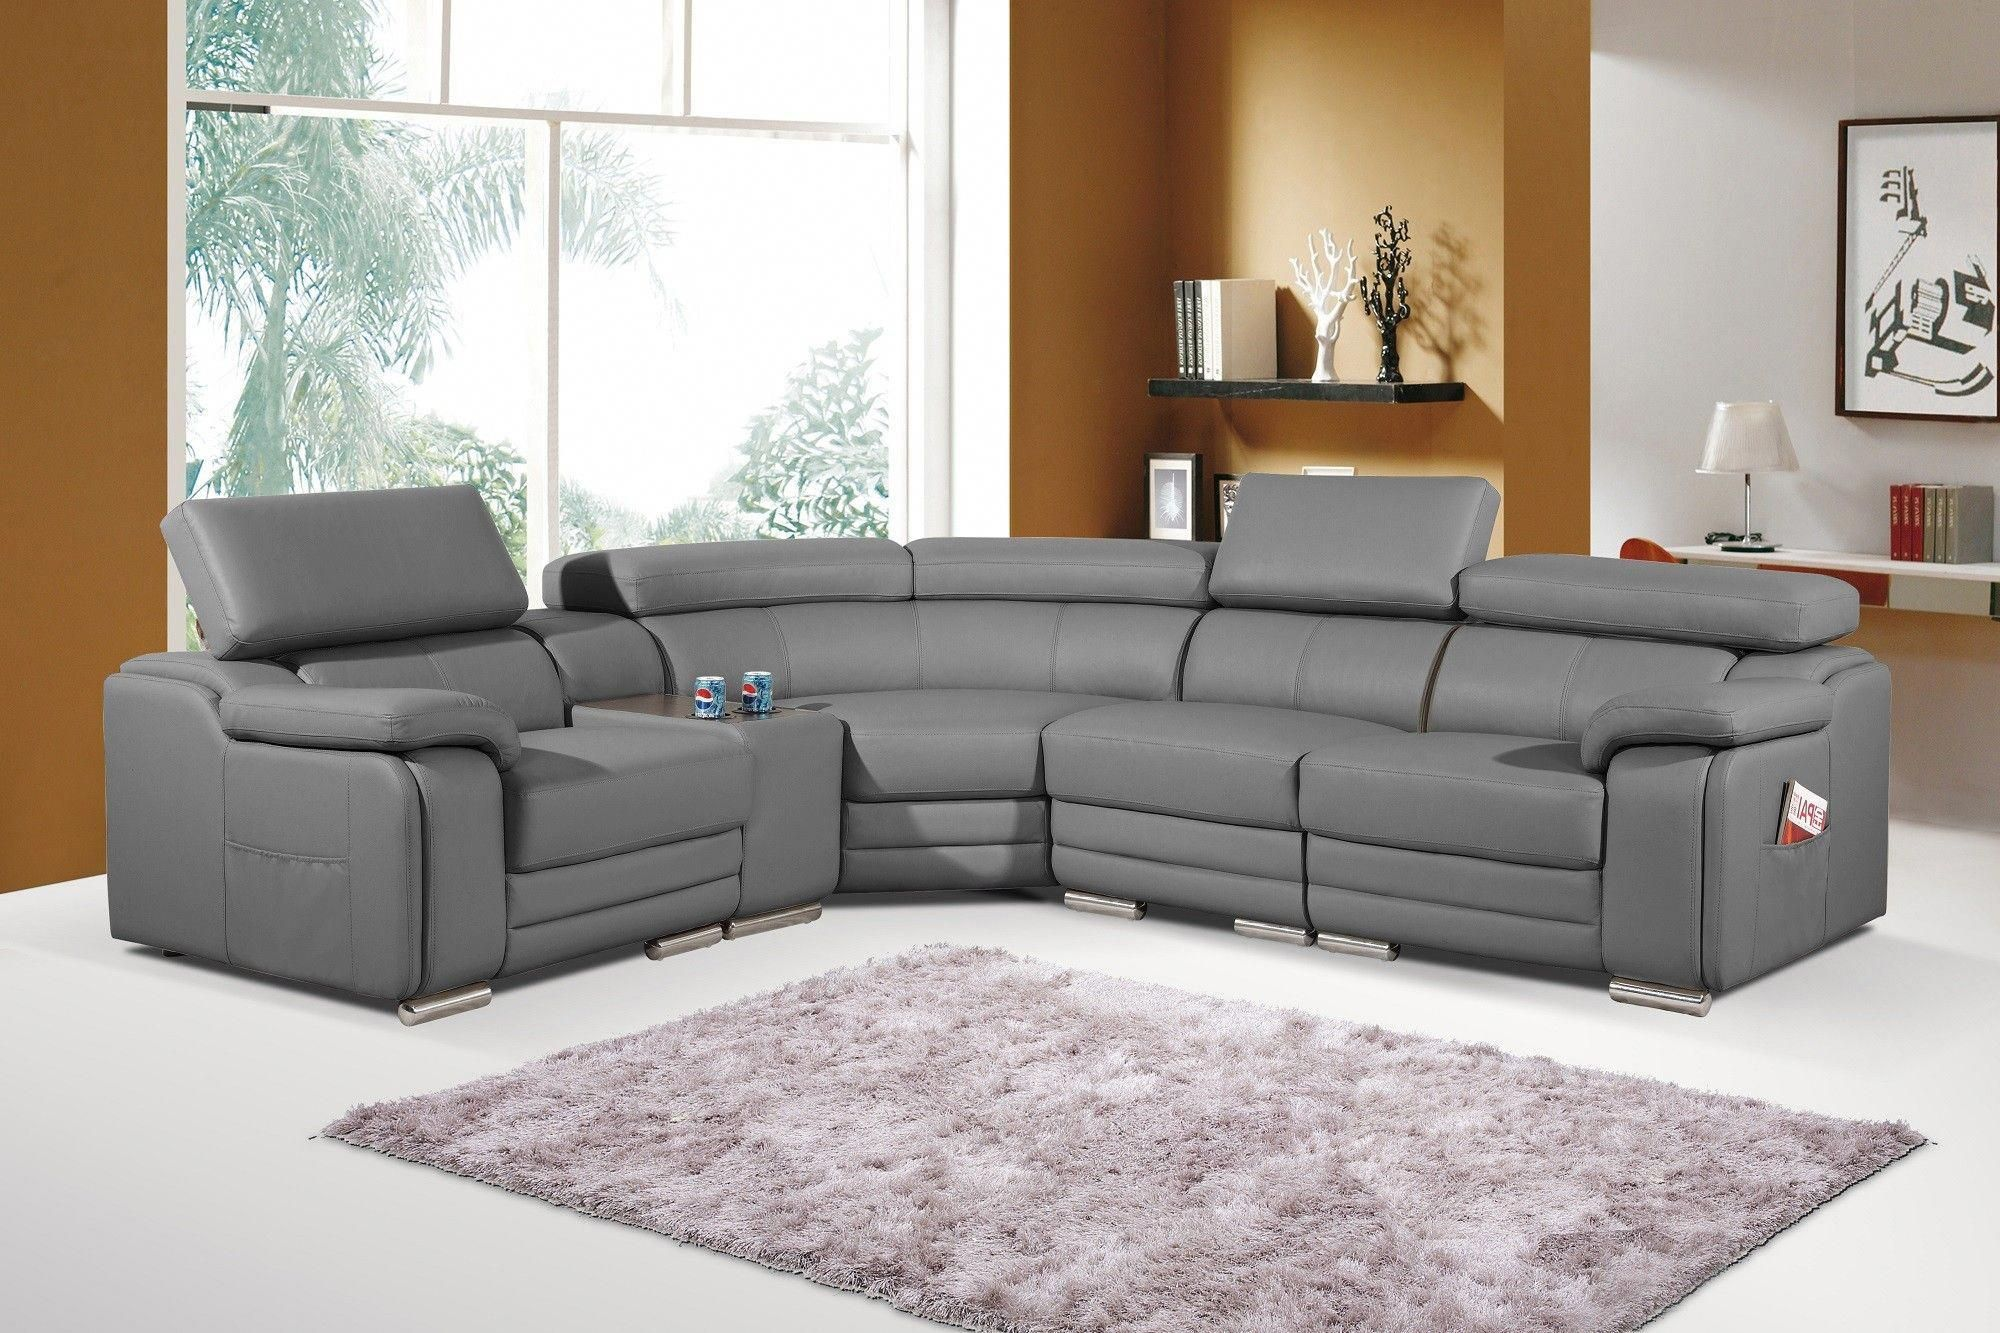 Leather Corner Sofas For Living Room Dakota Grey Bonded Leather Corner Sofa Left Hand Grey Corner Sofa Leather Corner Sofa Corner Sofa Living Room